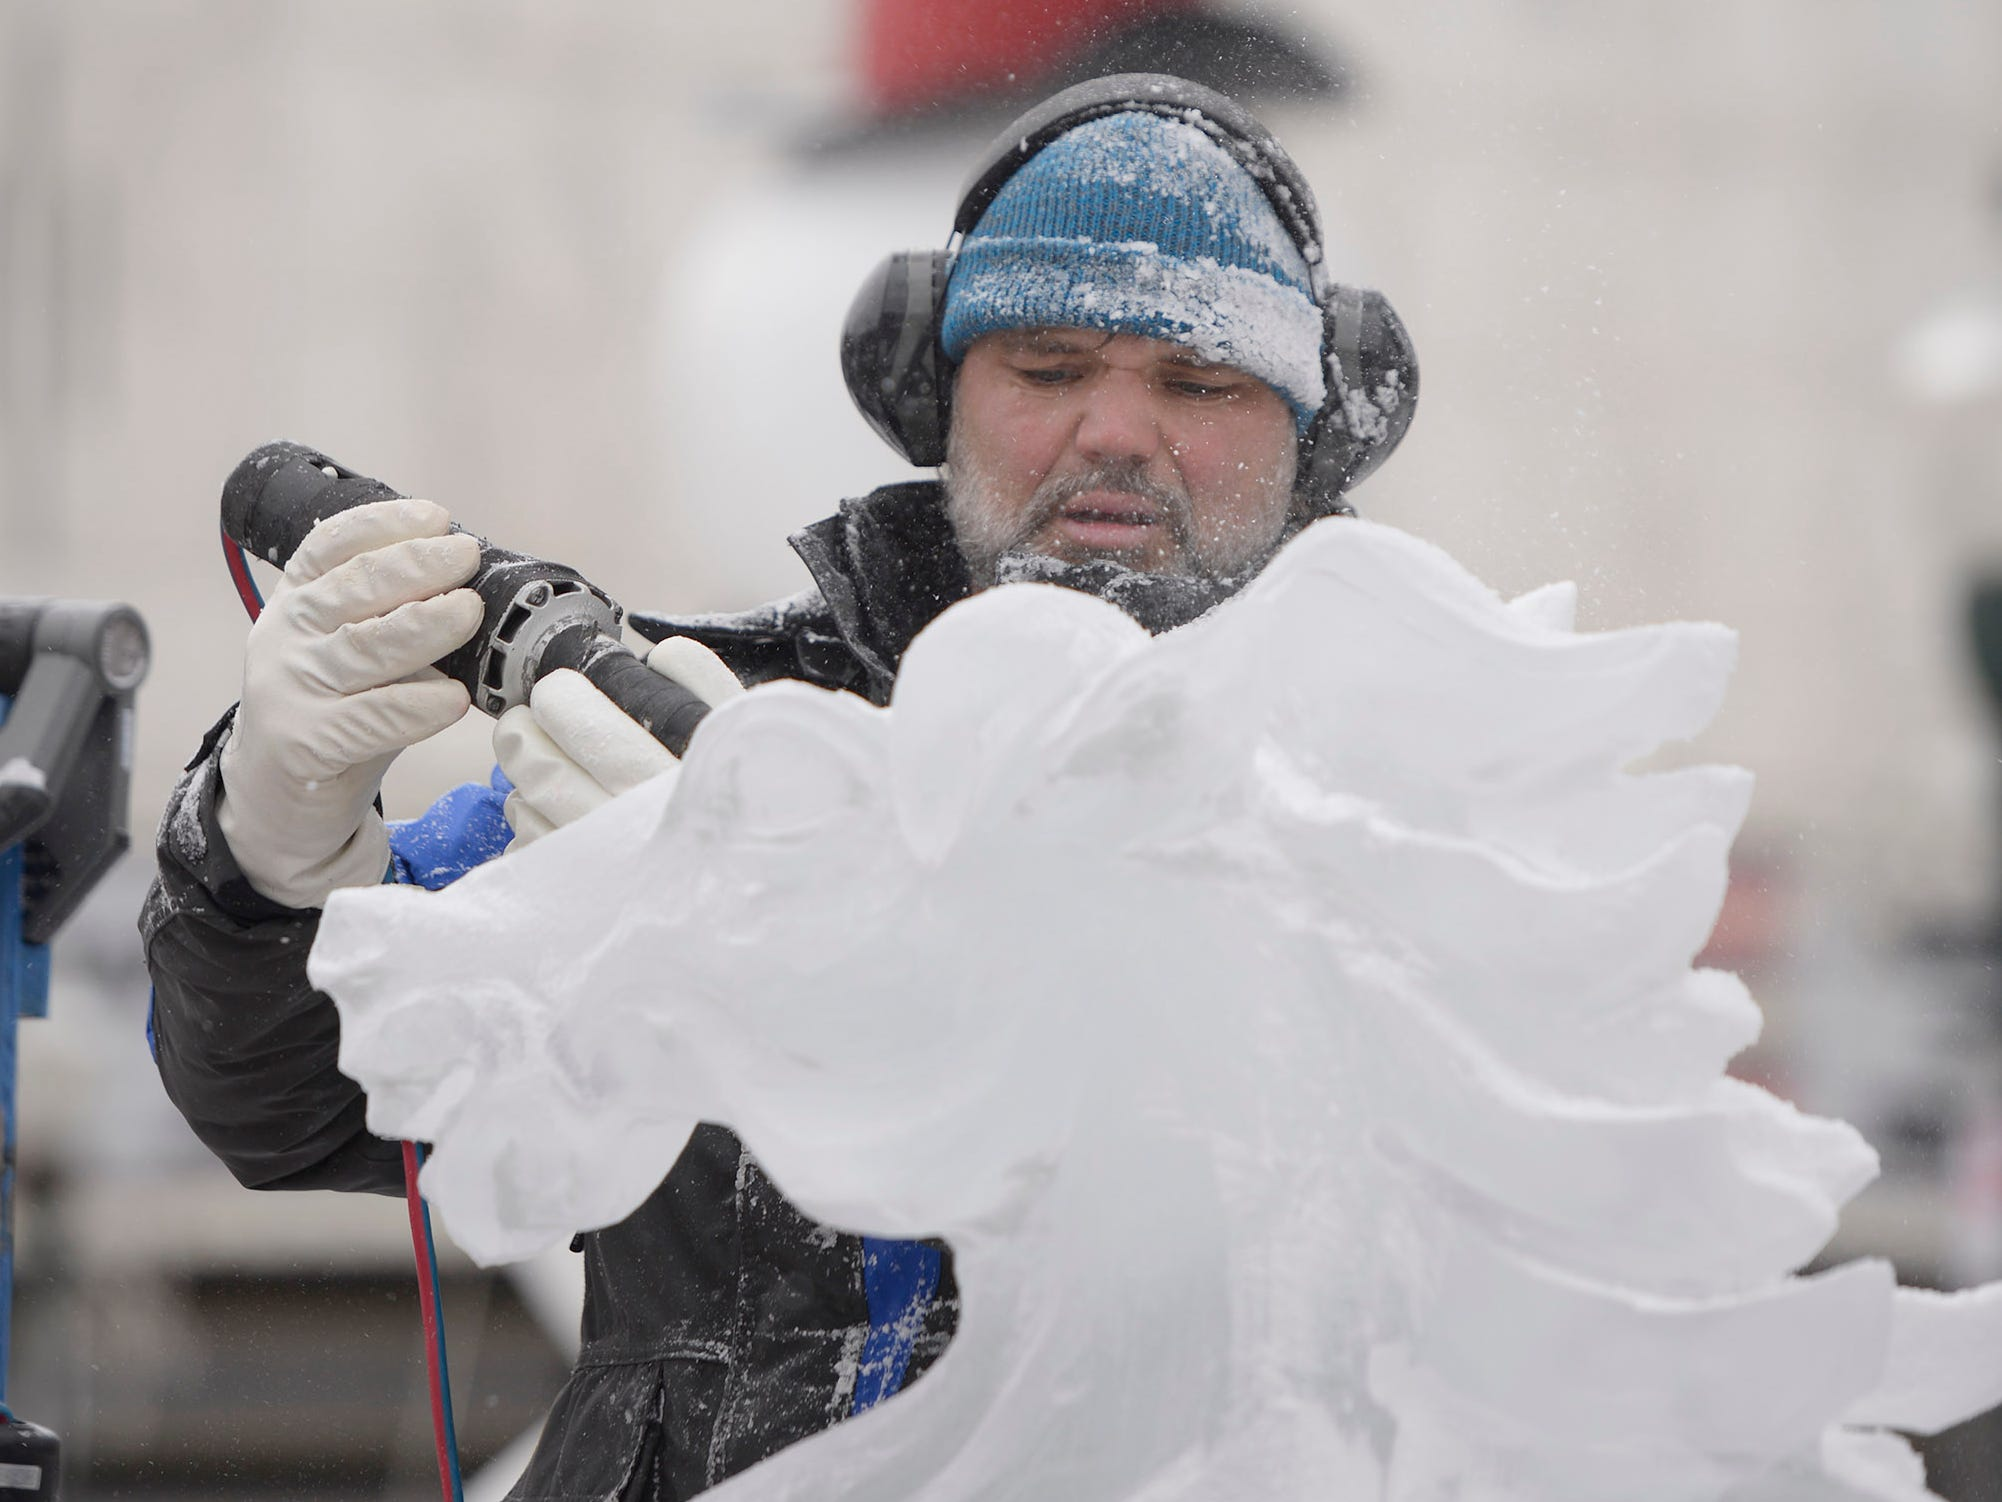 Aaron Costick from Elegant Ice Creations carves a horse head that will part of the main feature consisting of 14 blocks of ice, on Jan. 9 before the opening of the Plymouth Ice Festival that runs Jan. 11-13.